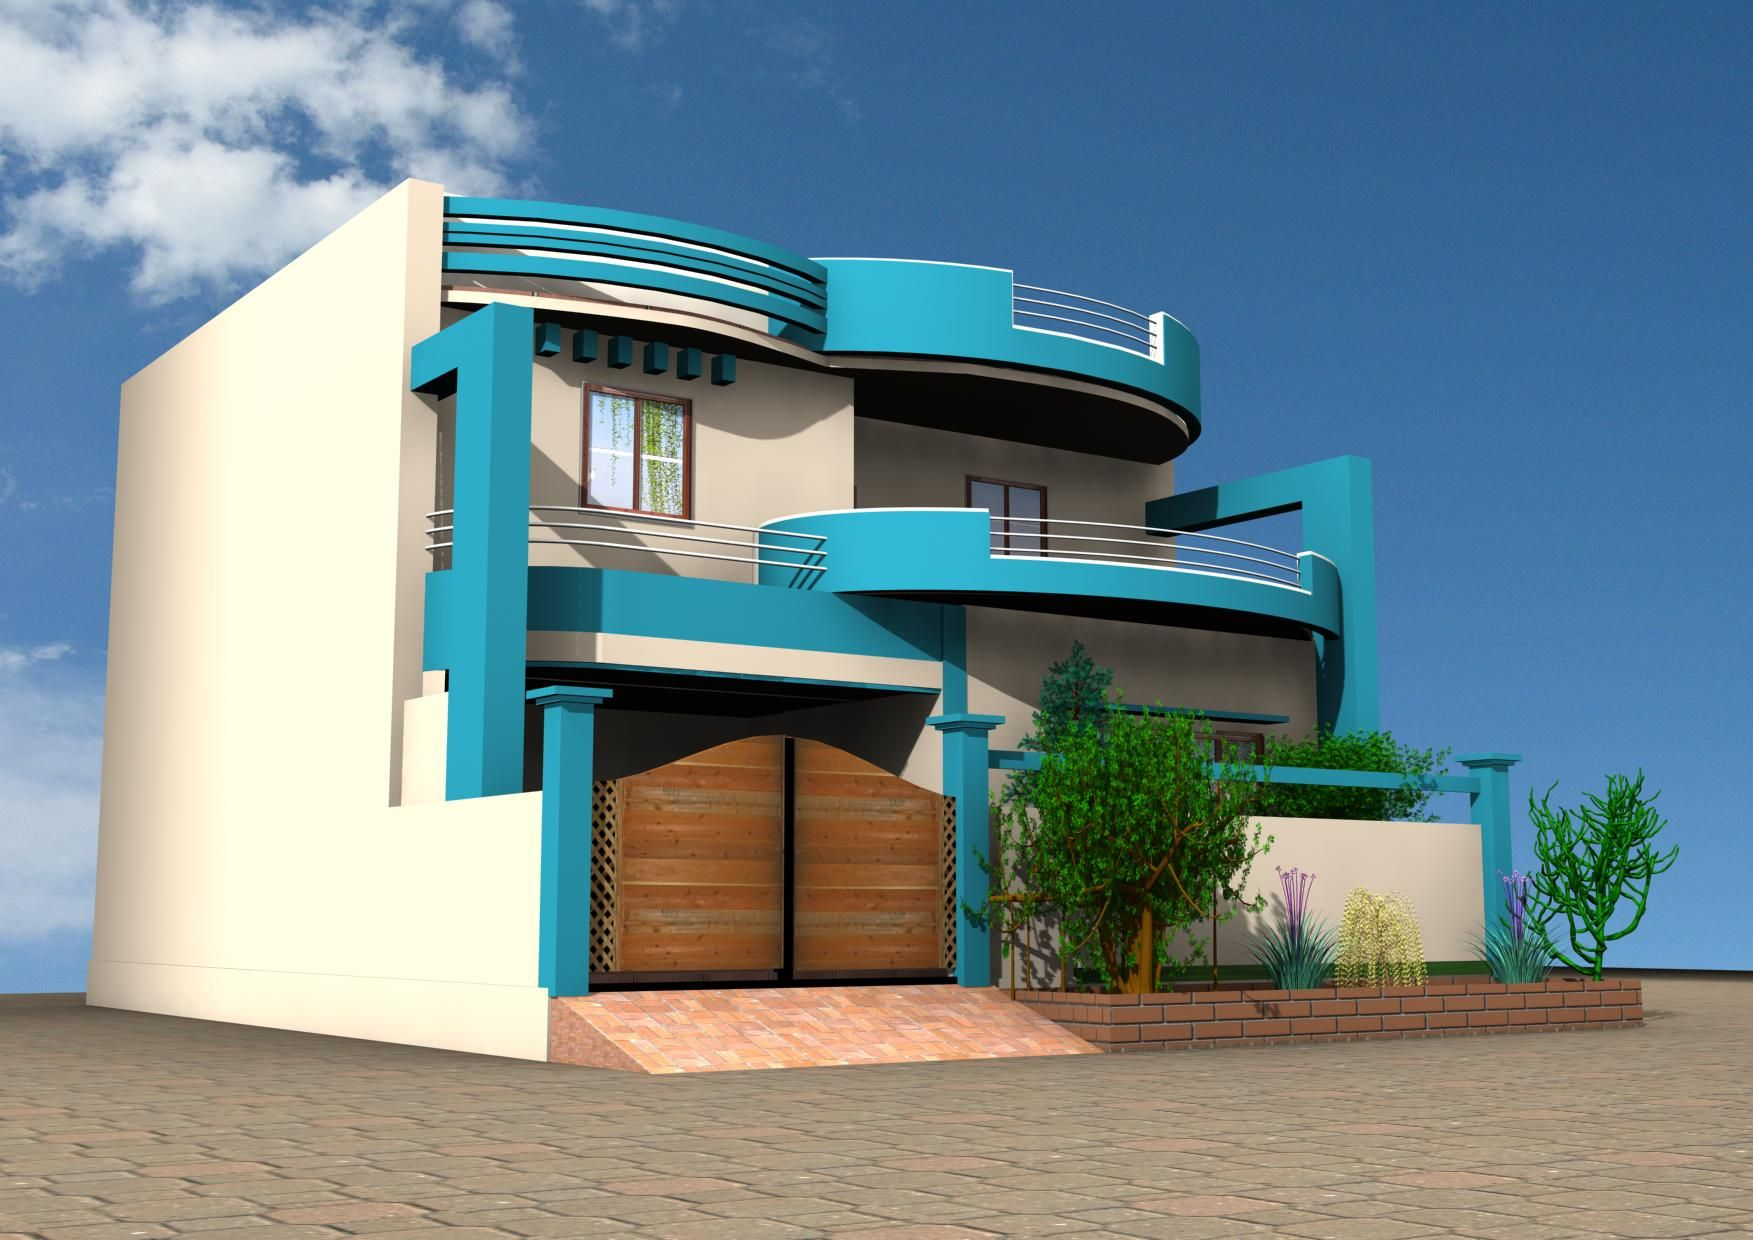 3d home design images hd 1080p for Latest house designs